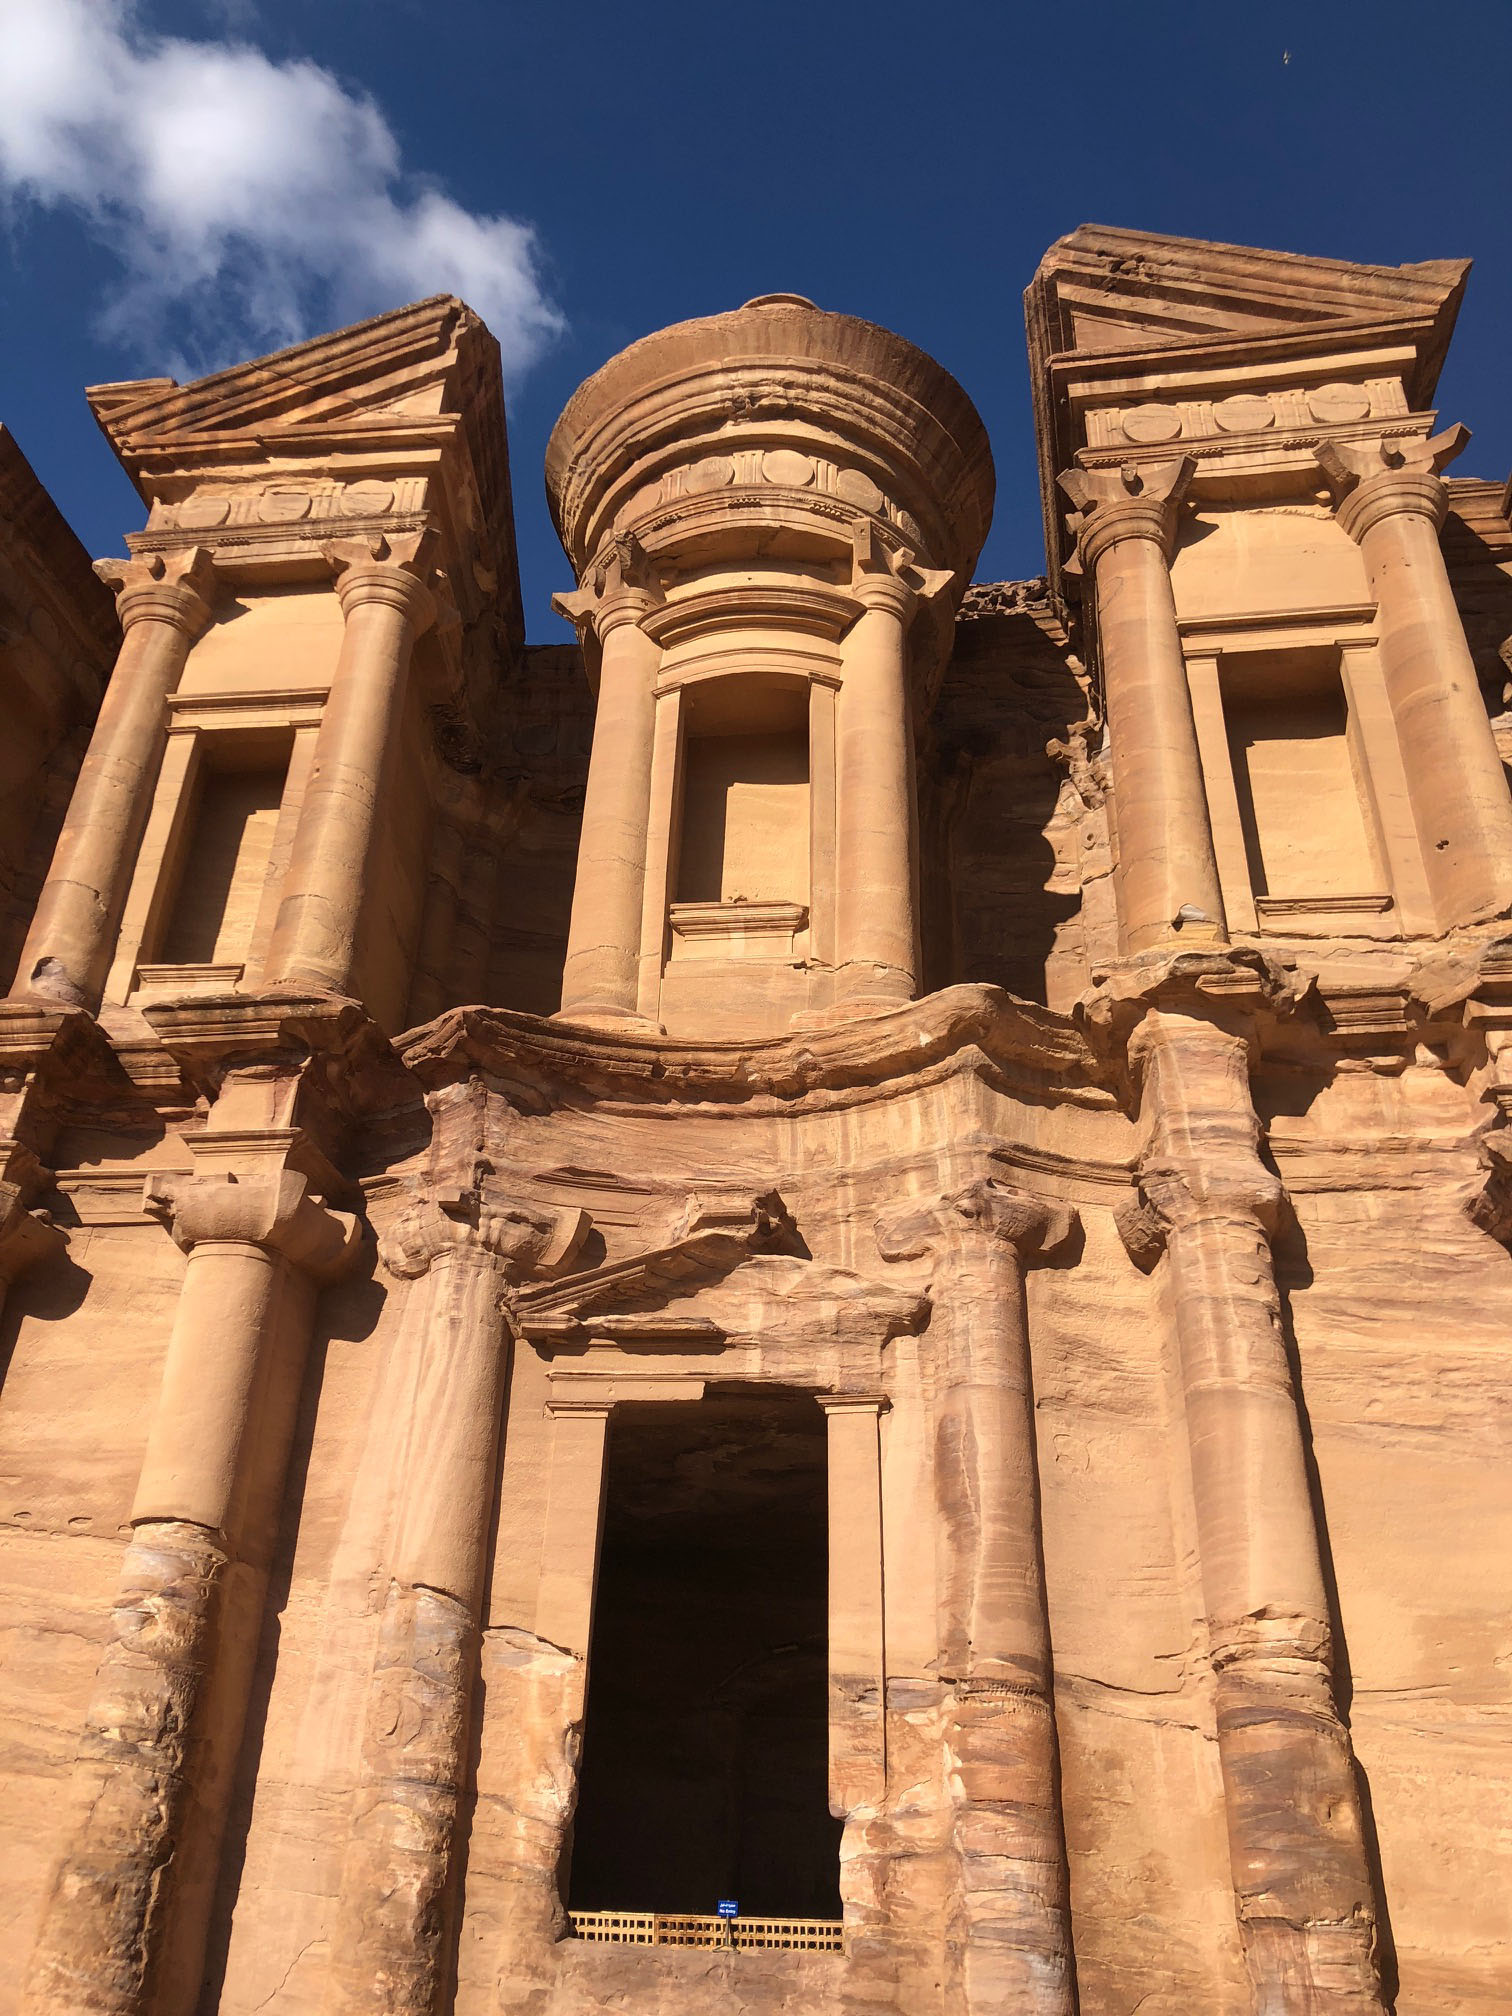 We also had another excursion to Petra through Amideast, this was taken at the Monastery, which was so worth the trek! Photo credit: Arguin, 2019